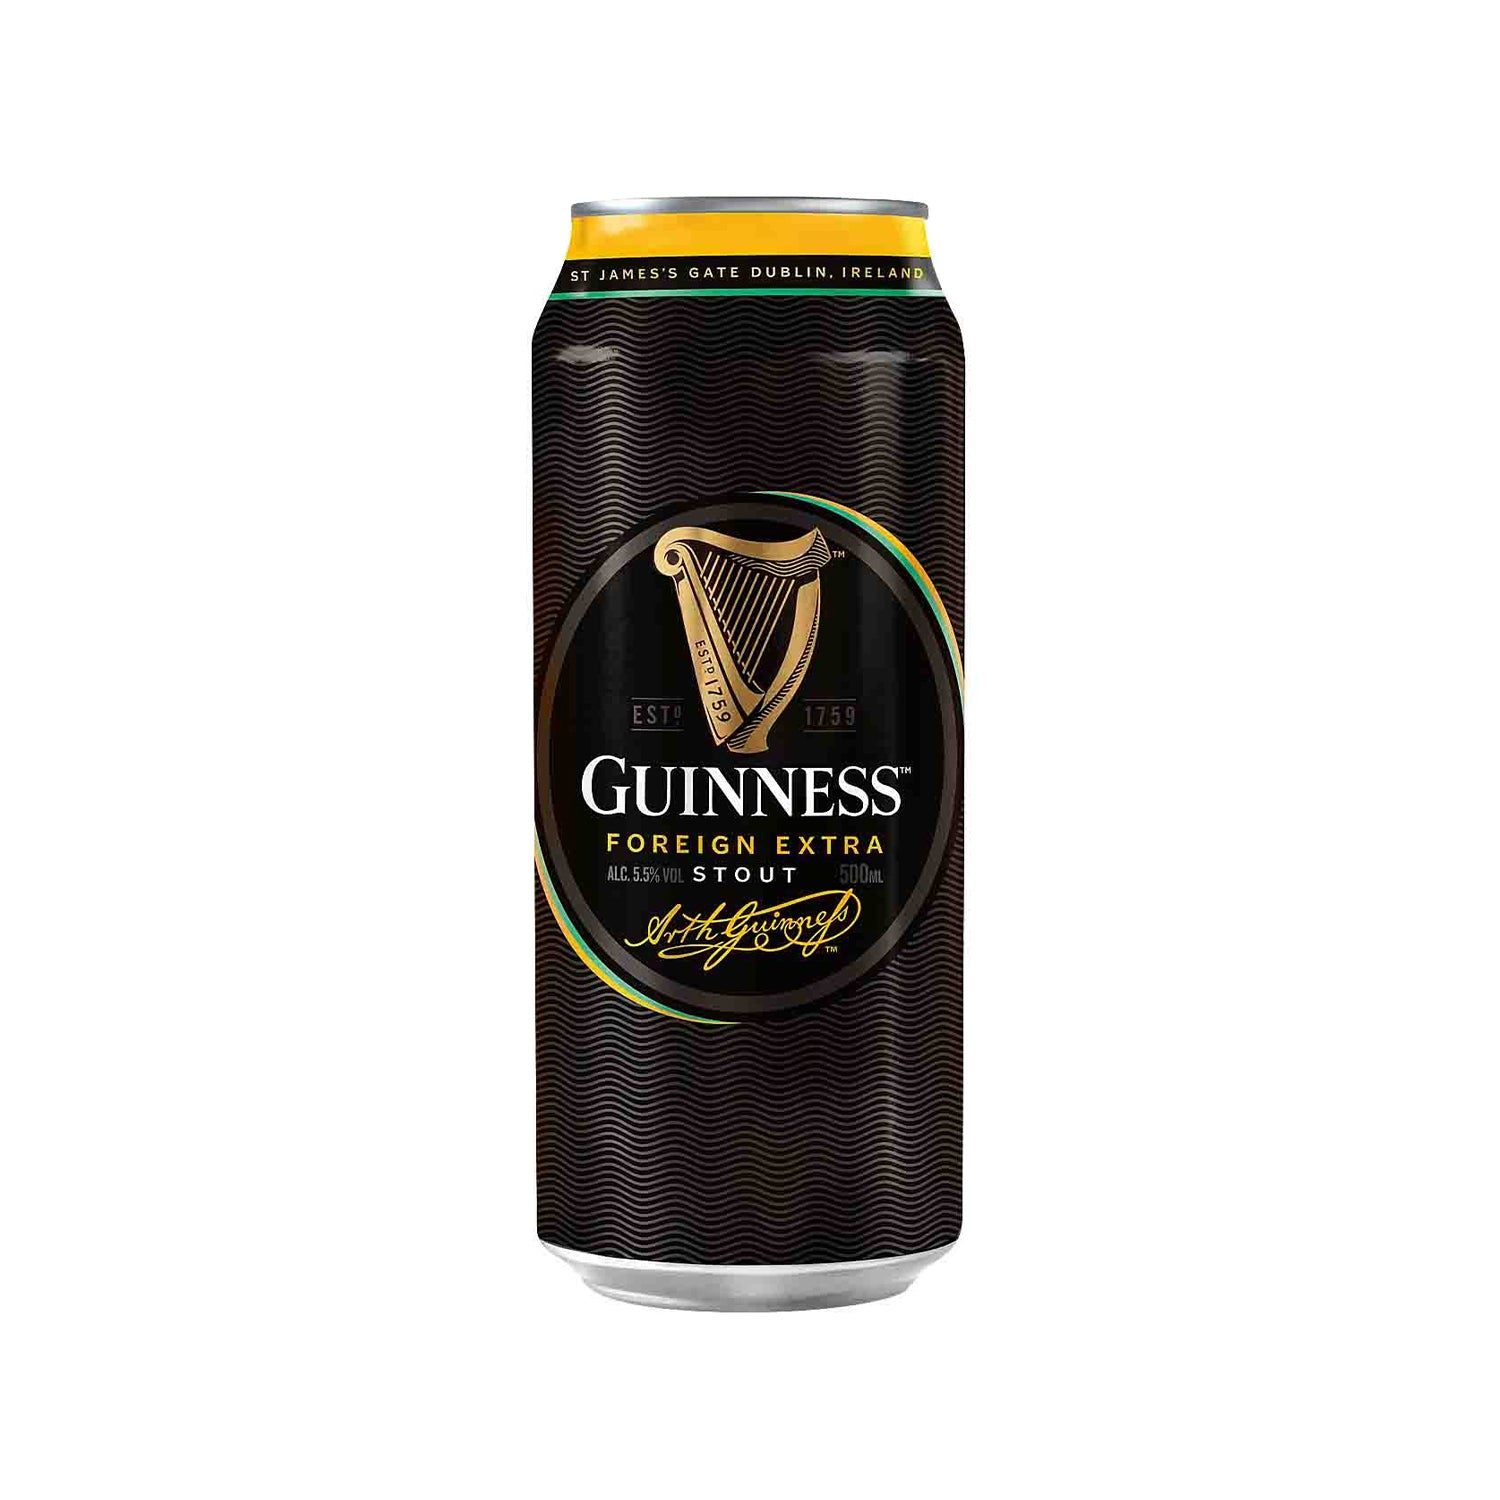 Guinness Foreign Extra Stout Beer Can [500ml]-Taste Singapore